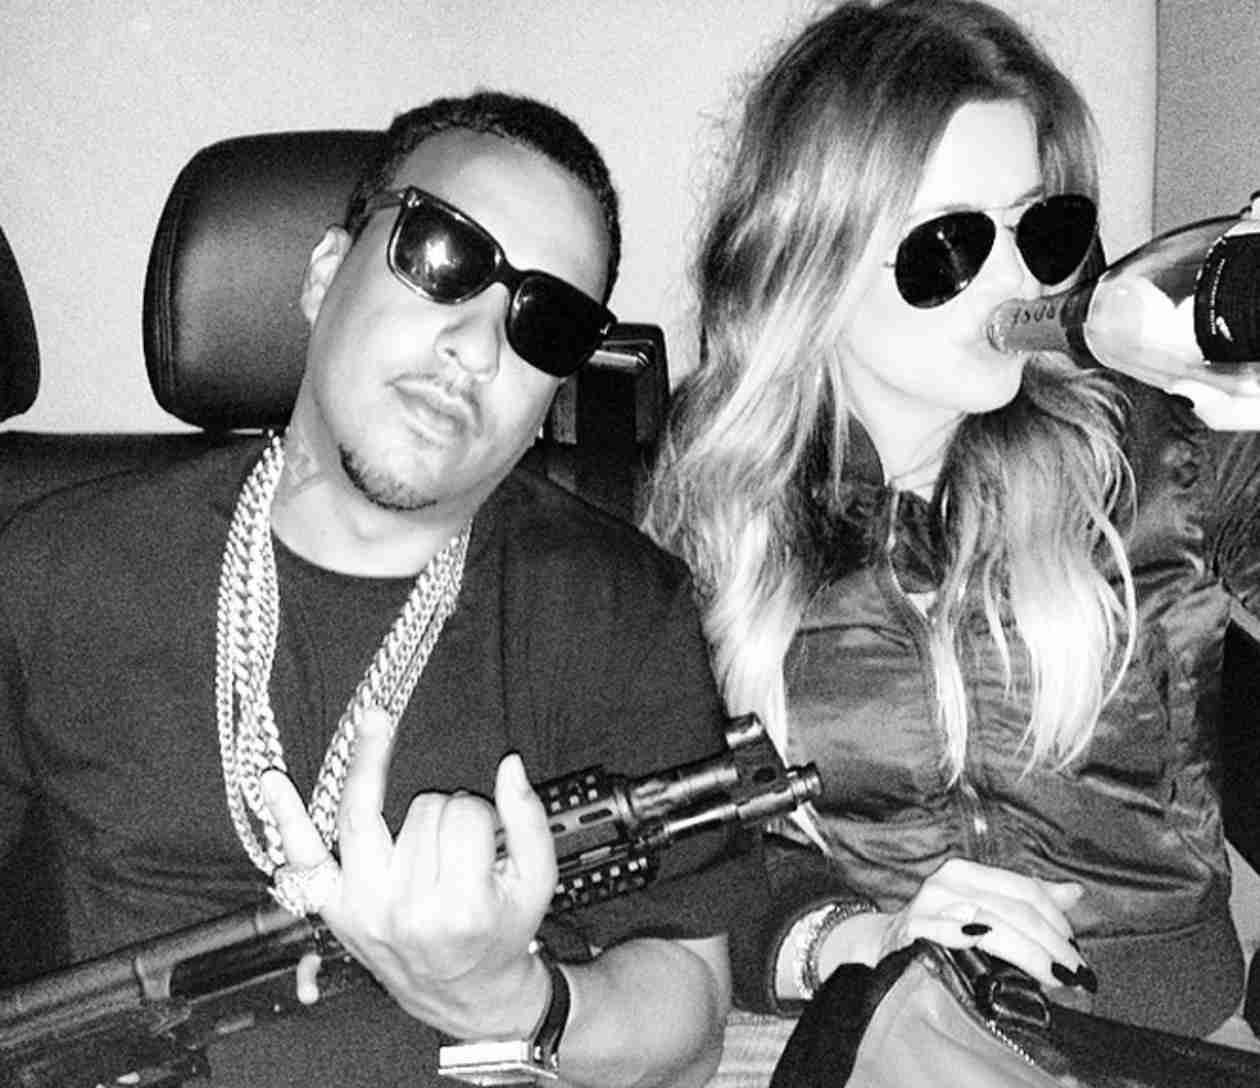 Khloe Kardashian to Star in French Montana's Upcoming Music Video